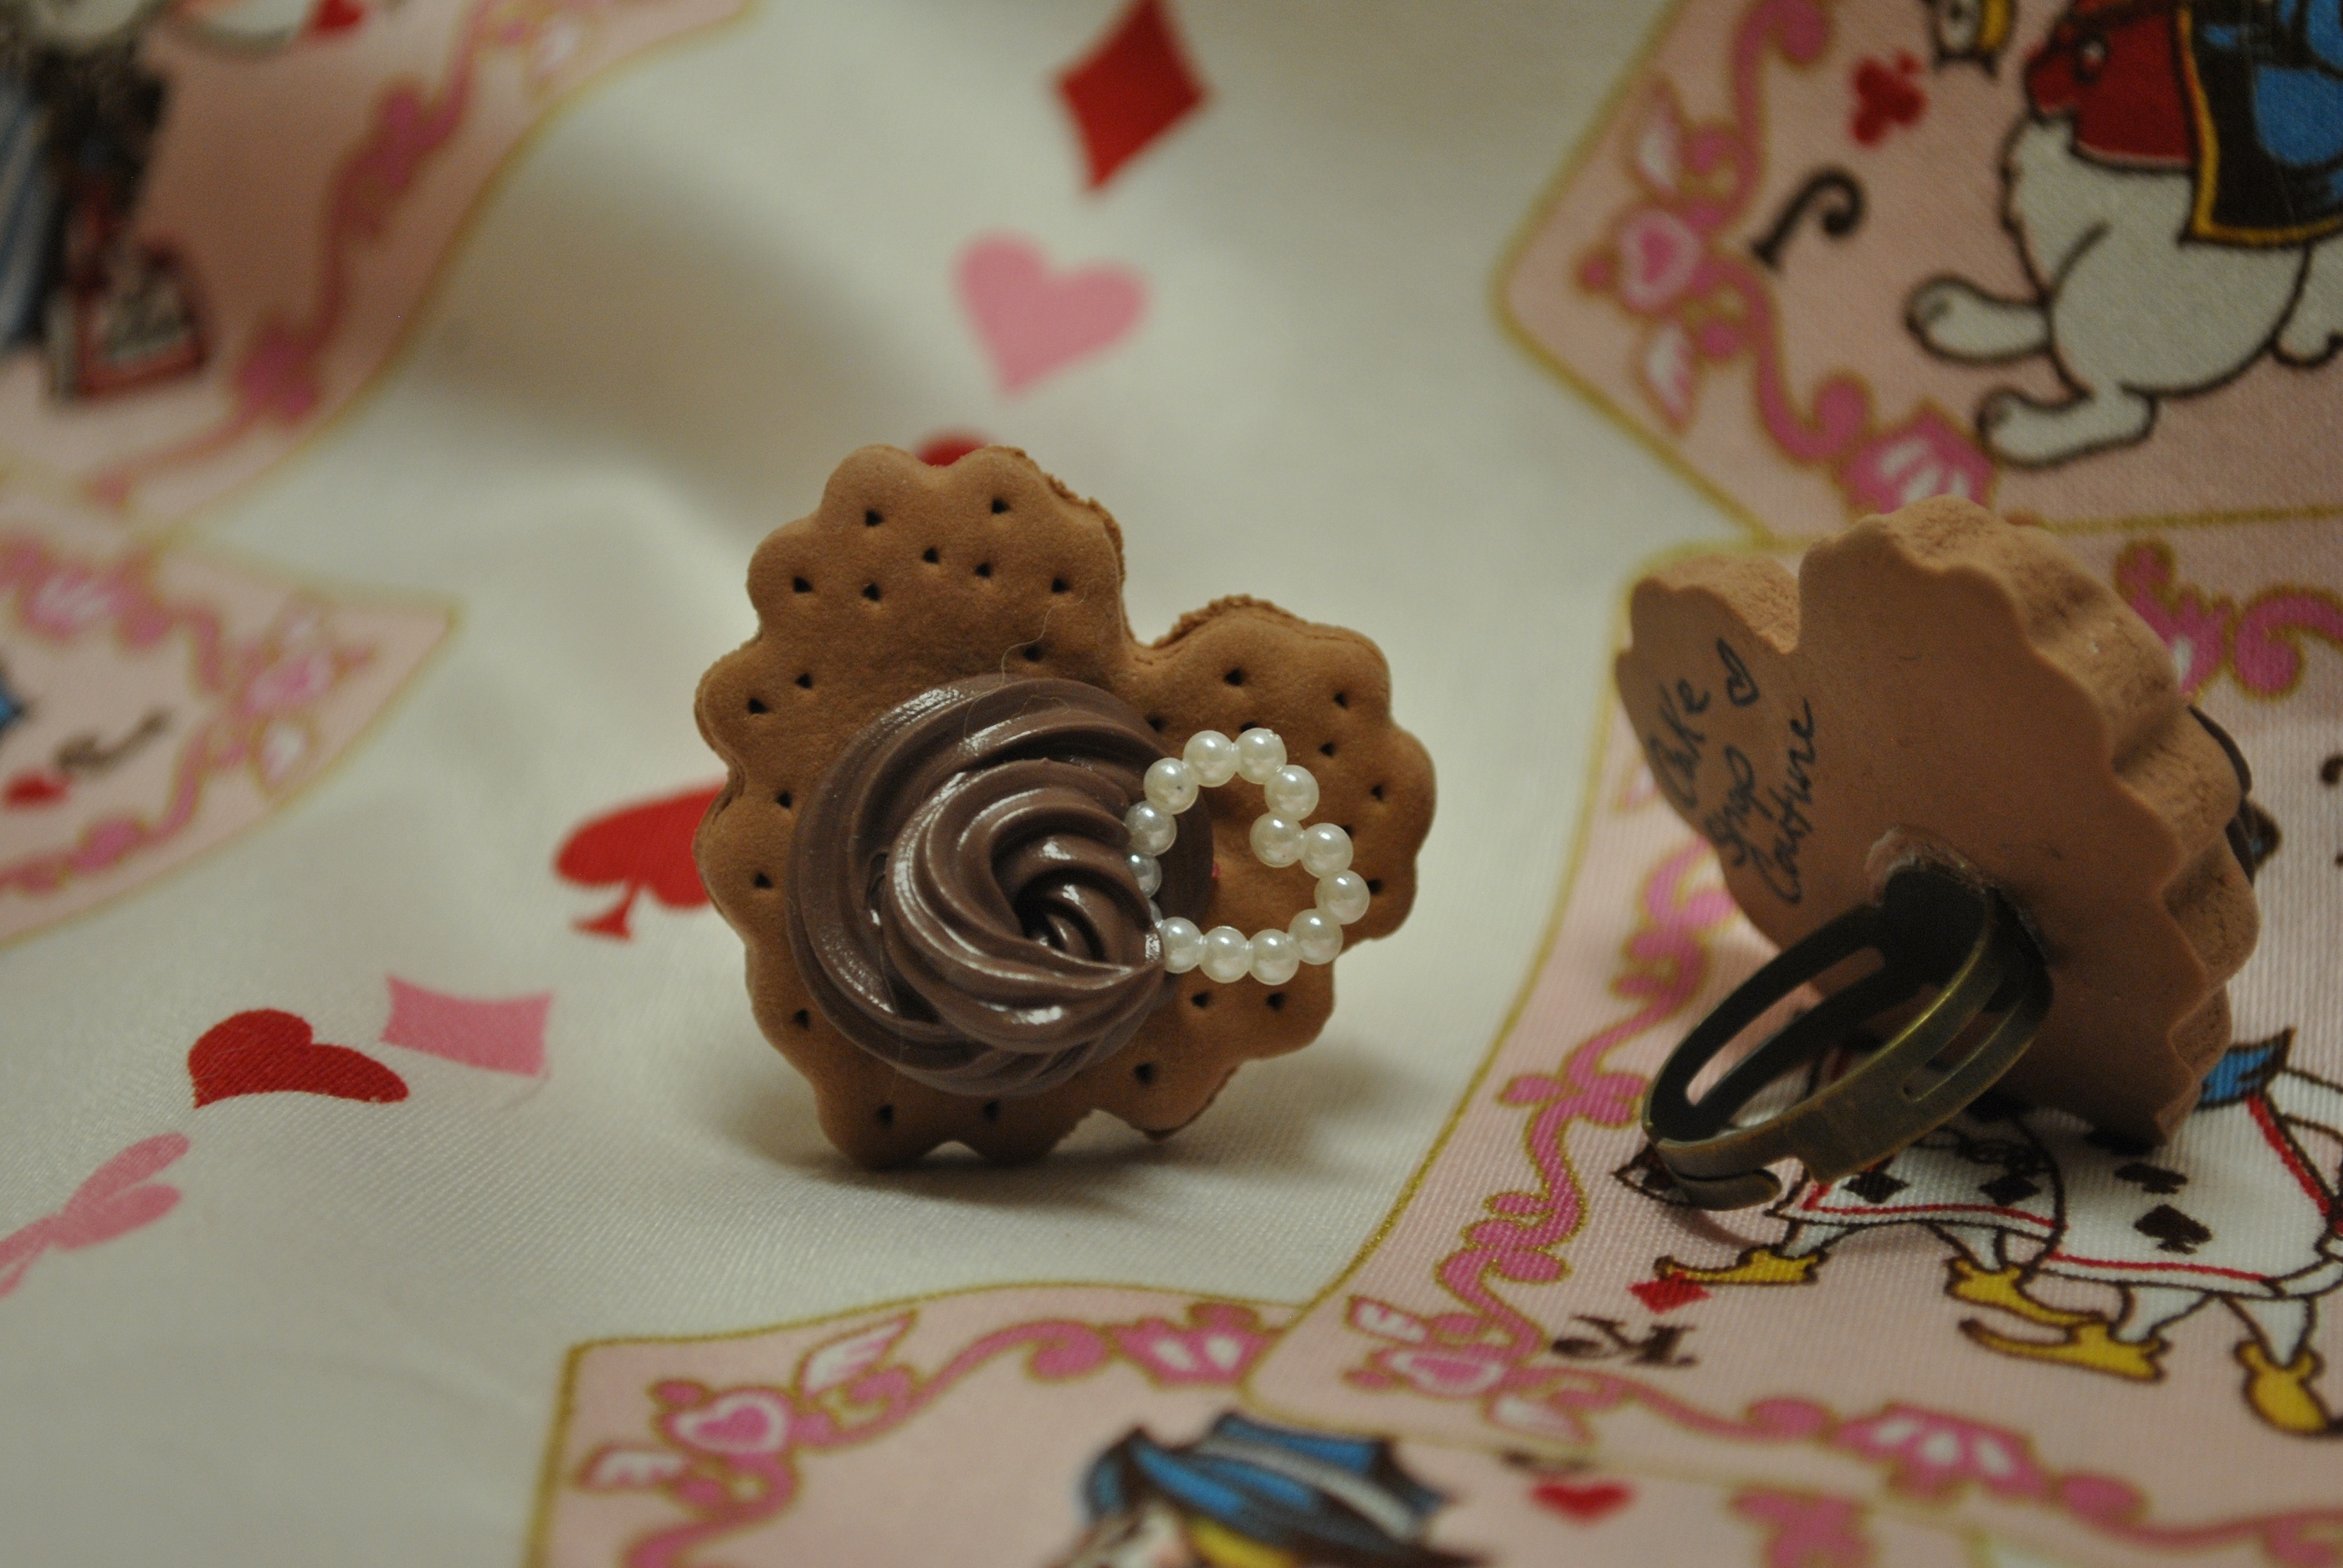 Choco_20heart_20cookie_20resize_original